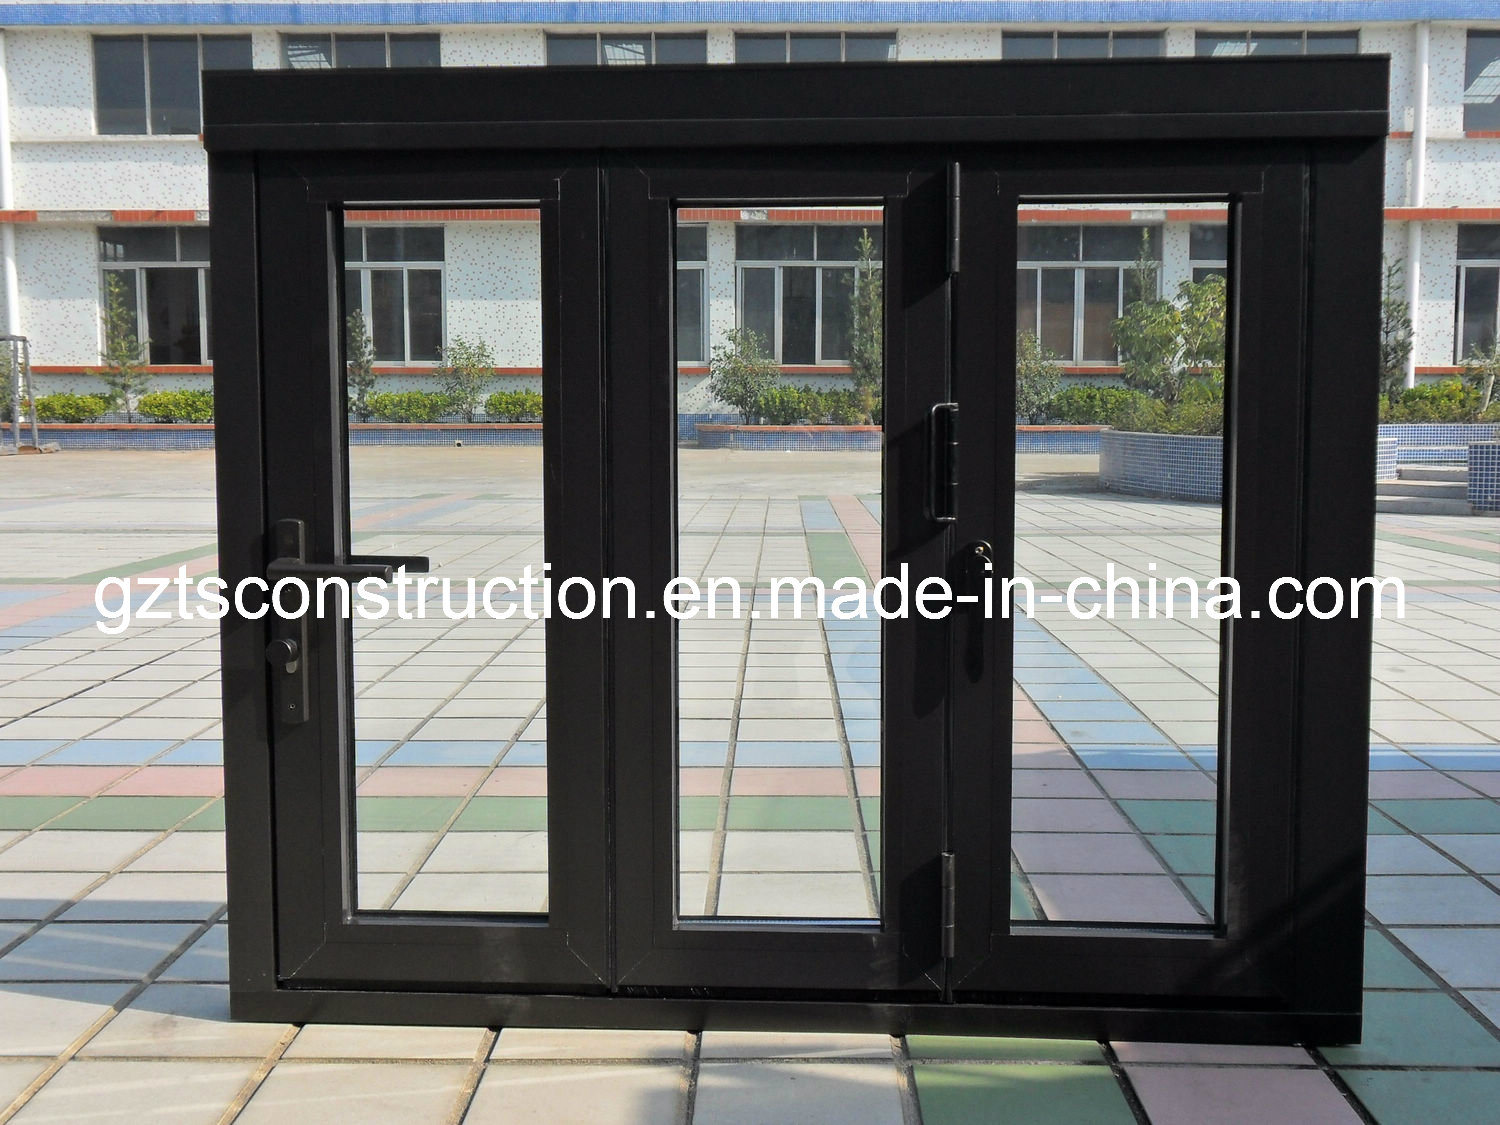 Customzied Double Glazing Aluminium Casement Window with Roller Shutter pictures & photos